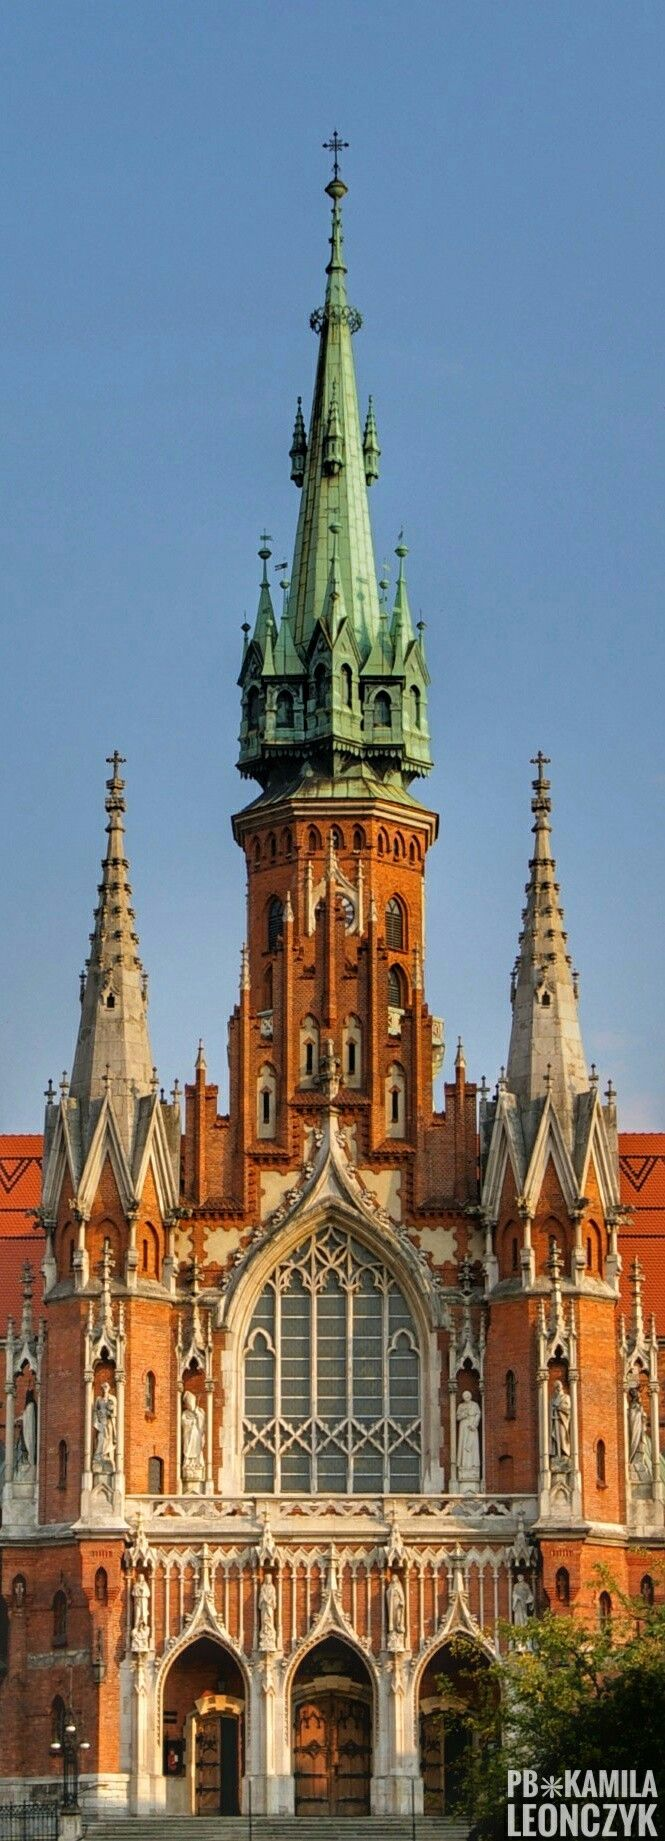 St. Joseph's Church - is a historic Roman Catholic church in Podgórze district of Kraków, Poland, at Podgórski Square on the northern slopes of the Krzemionki foothills in the south-central part of the city. The church was built between 1905 and 1909, and designed by Jan Sas Zubrzycki, in Gothic Revival style. It is the largest church in the area. http://reversehomesickness.com/europe/famous-german-castles/